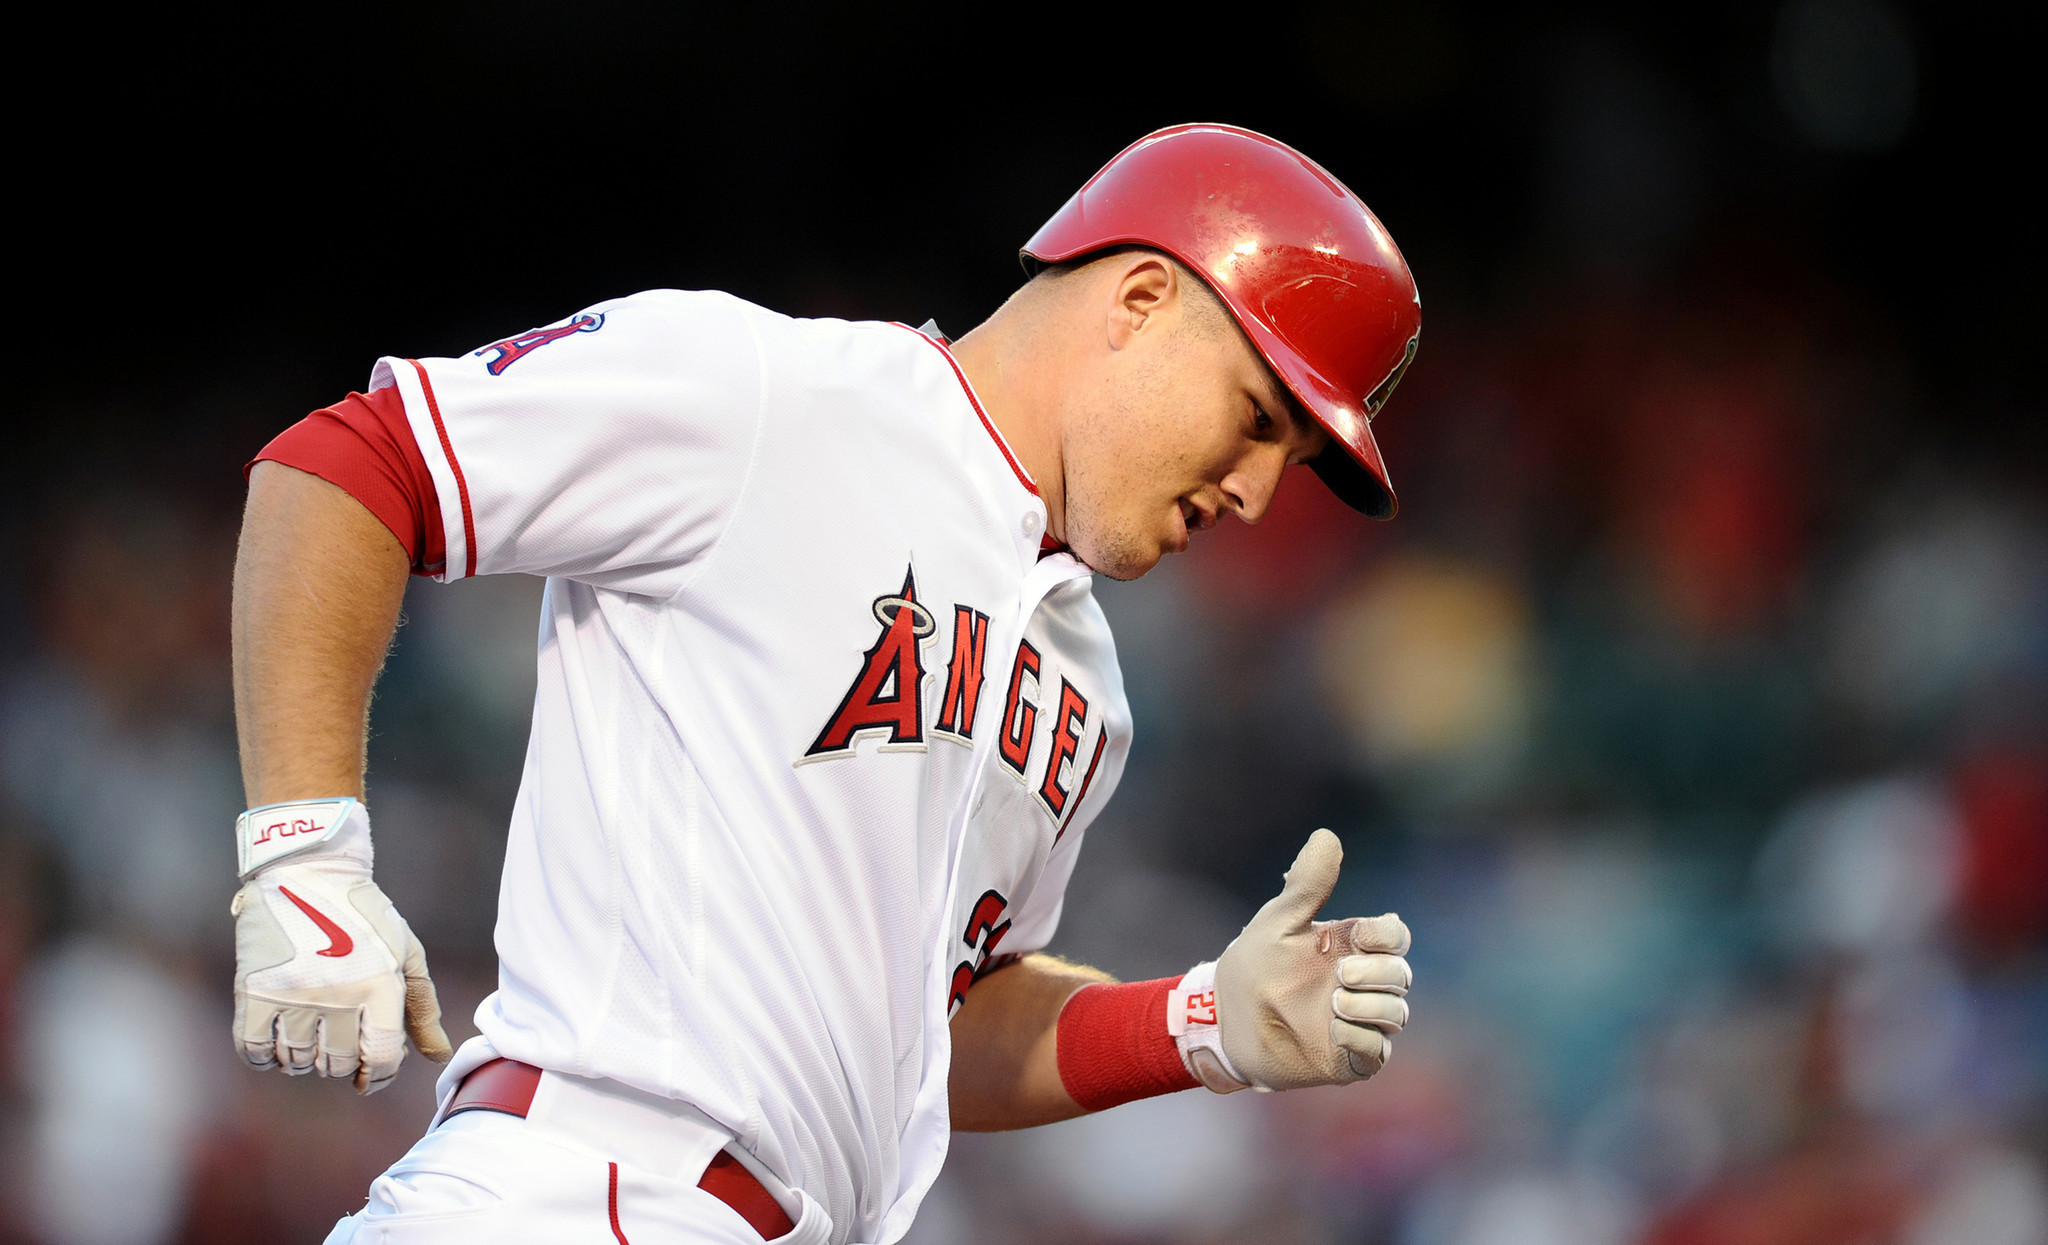 La-sp-angels-trade-trout-20160519